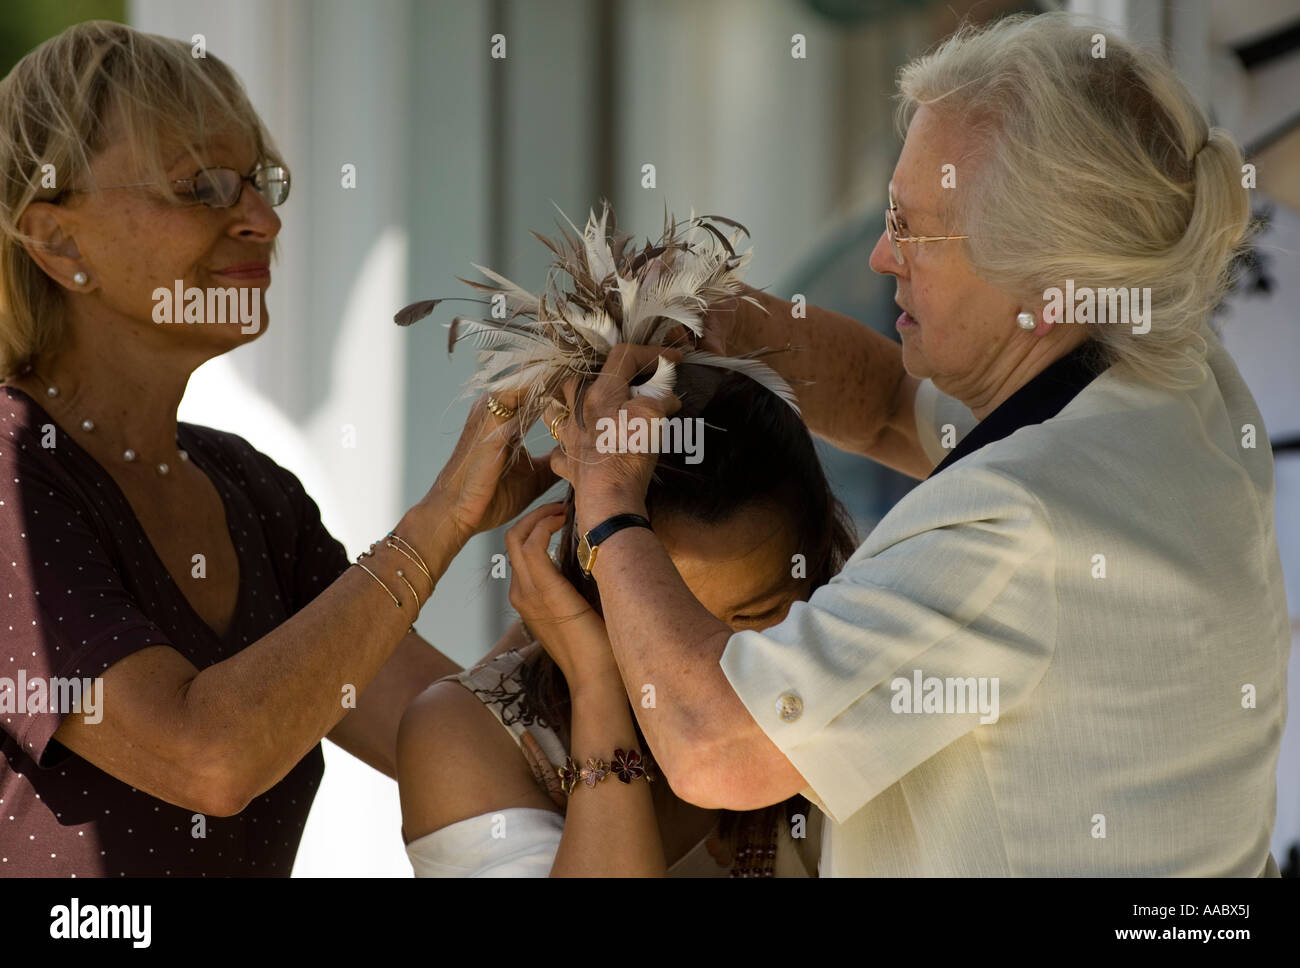 Milliners fitting a hat with pins during Royal Ascot - Stock Image